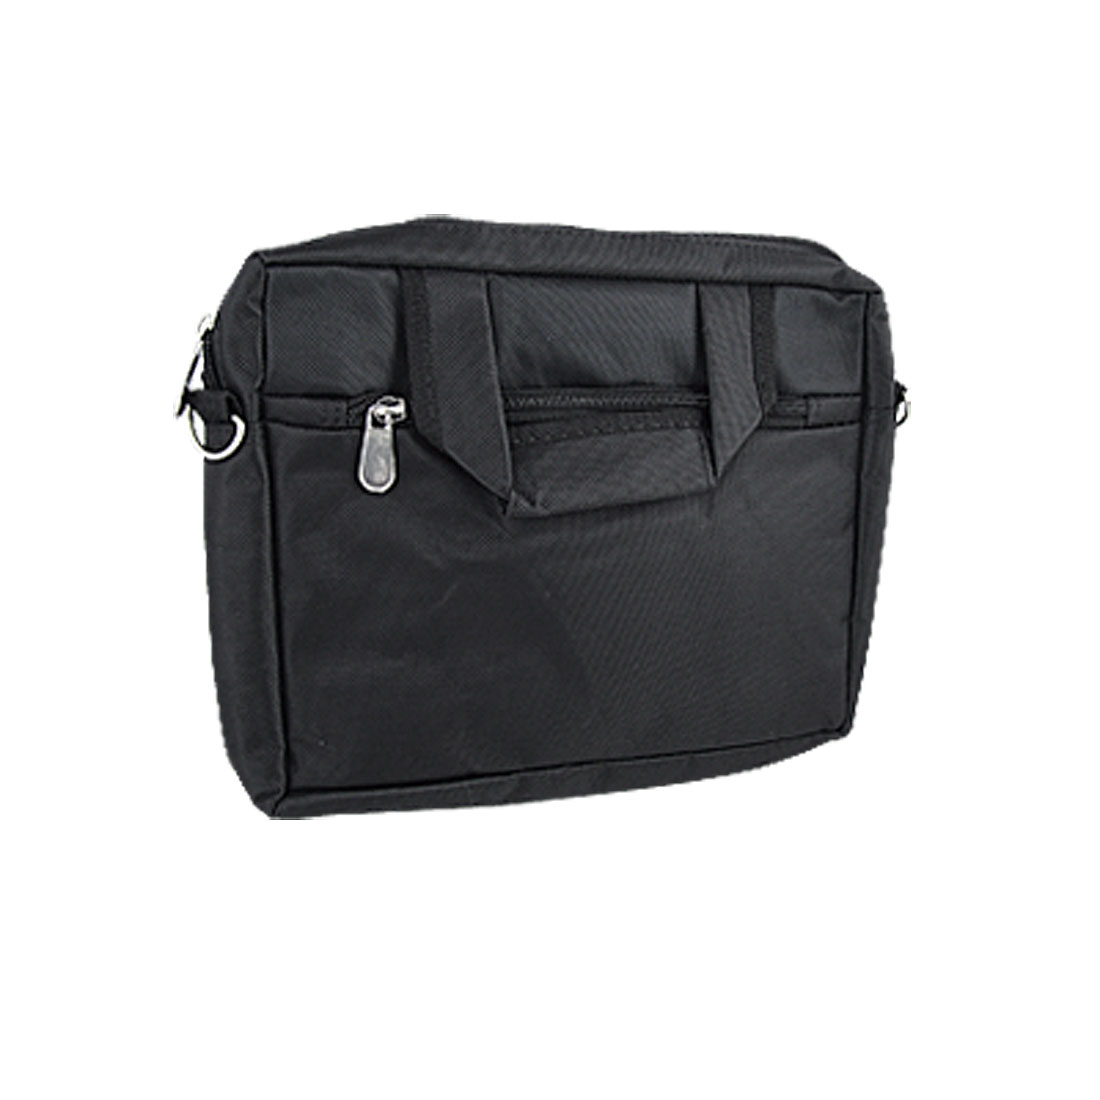 "10"" 10.1"" 10.2"" Black Notebook Laptop Shoulder Bag Carrying Case"